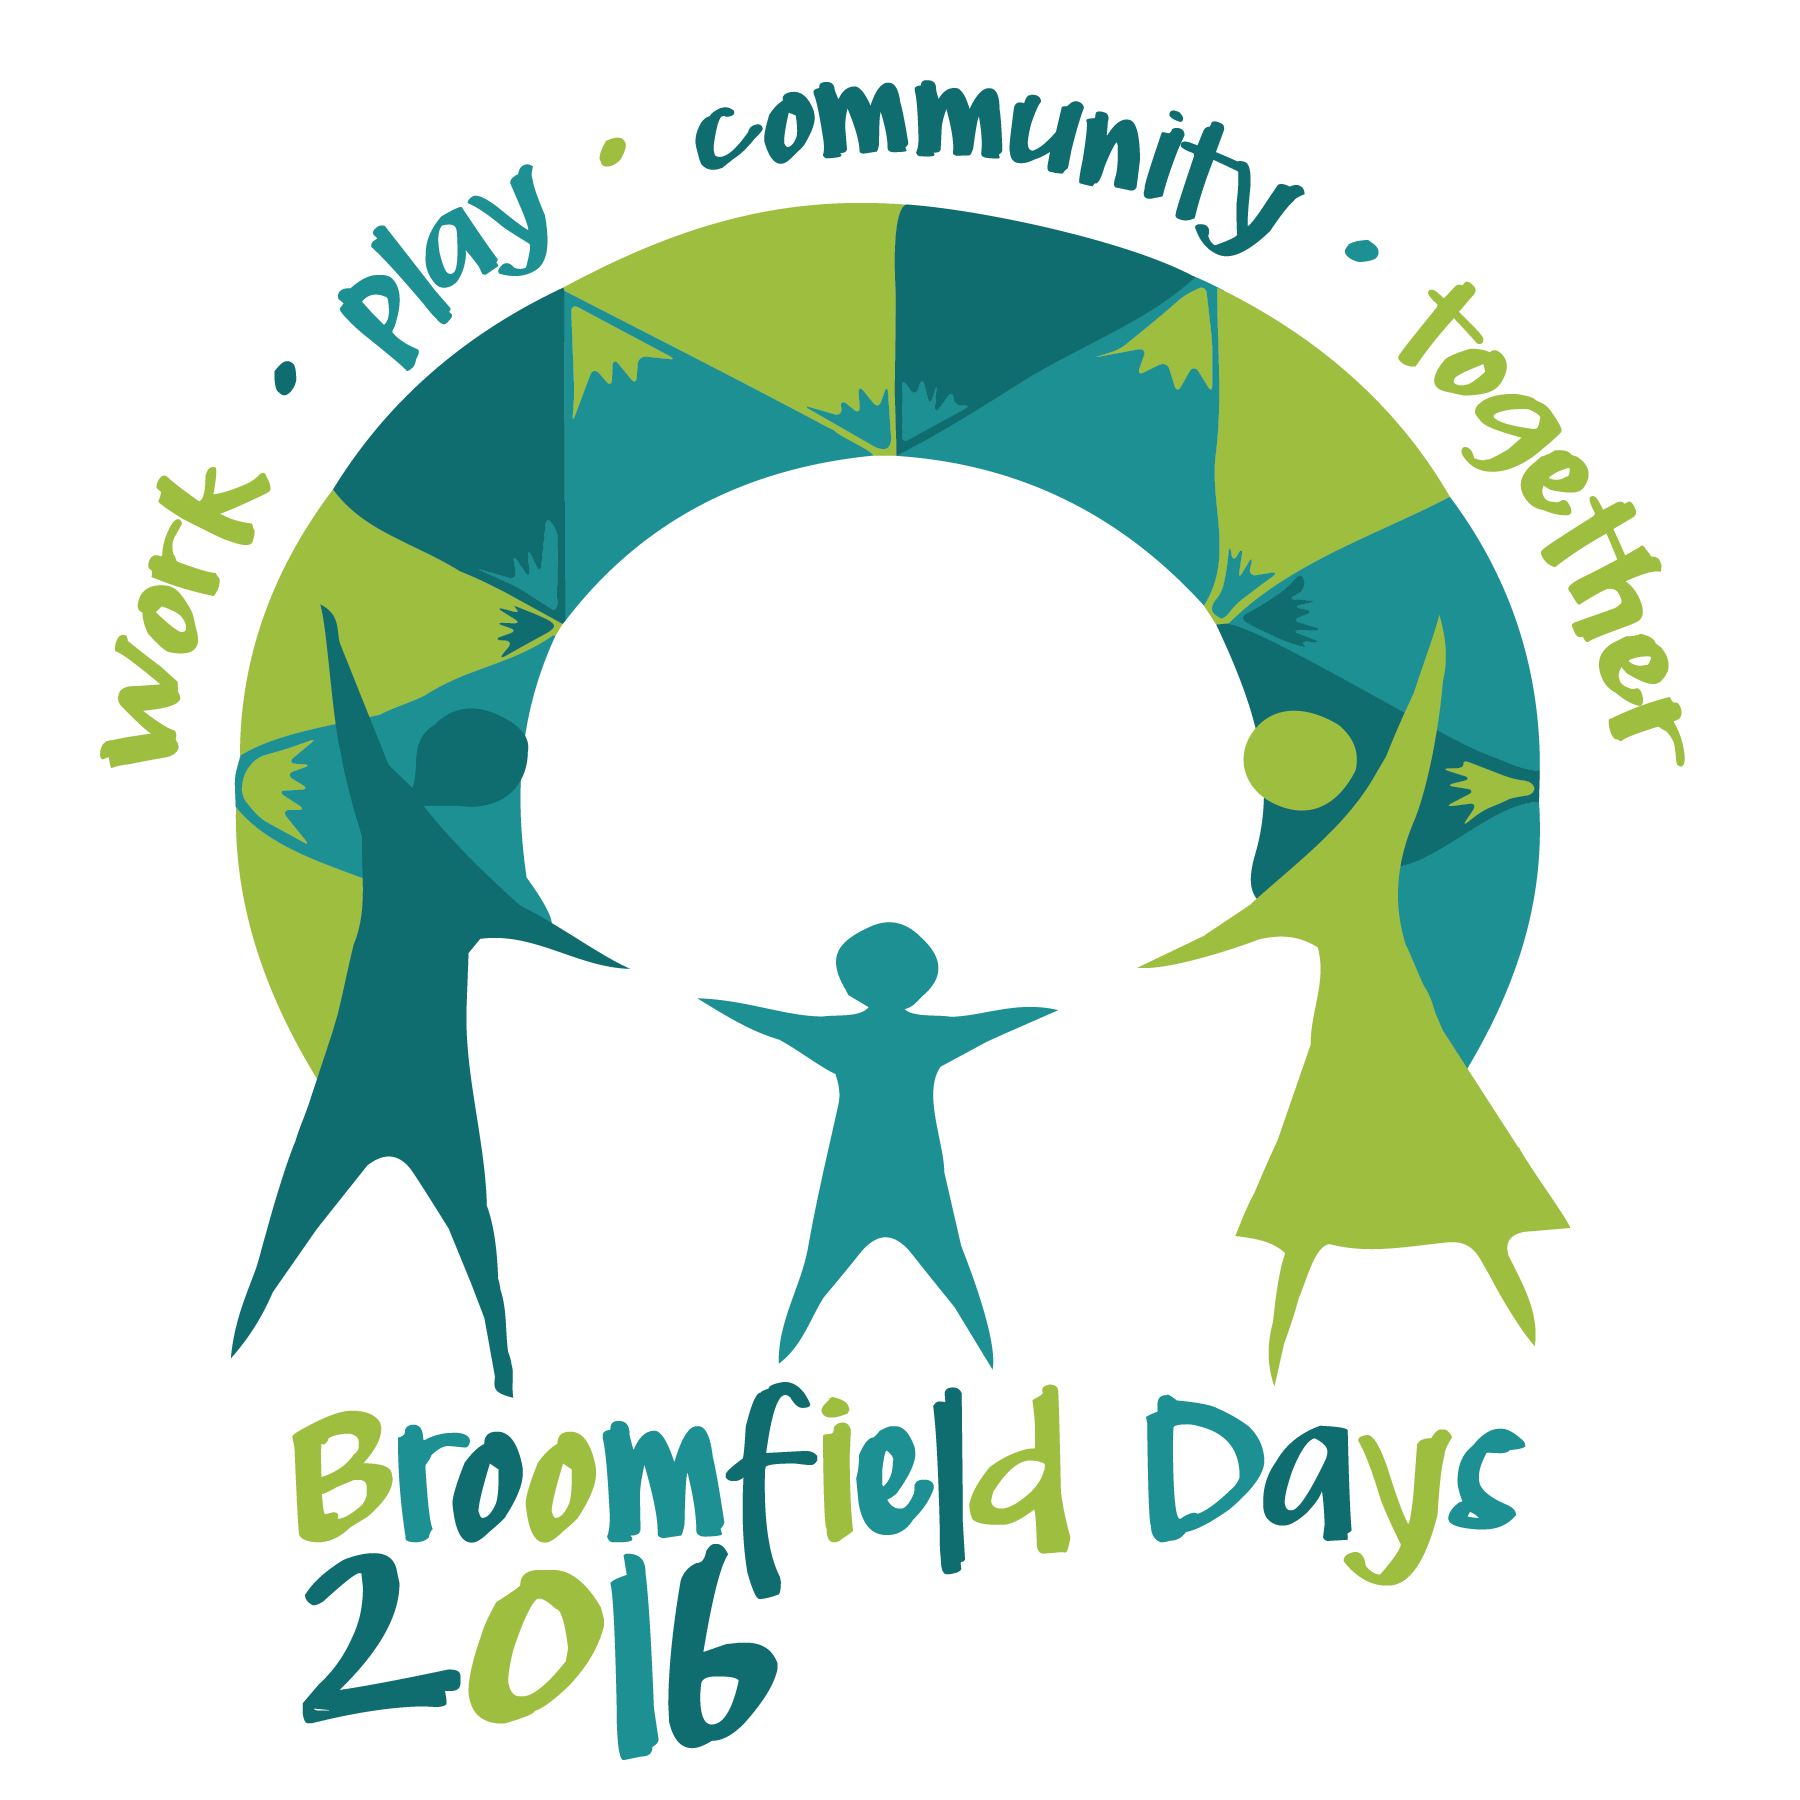 Broomfield days 2016